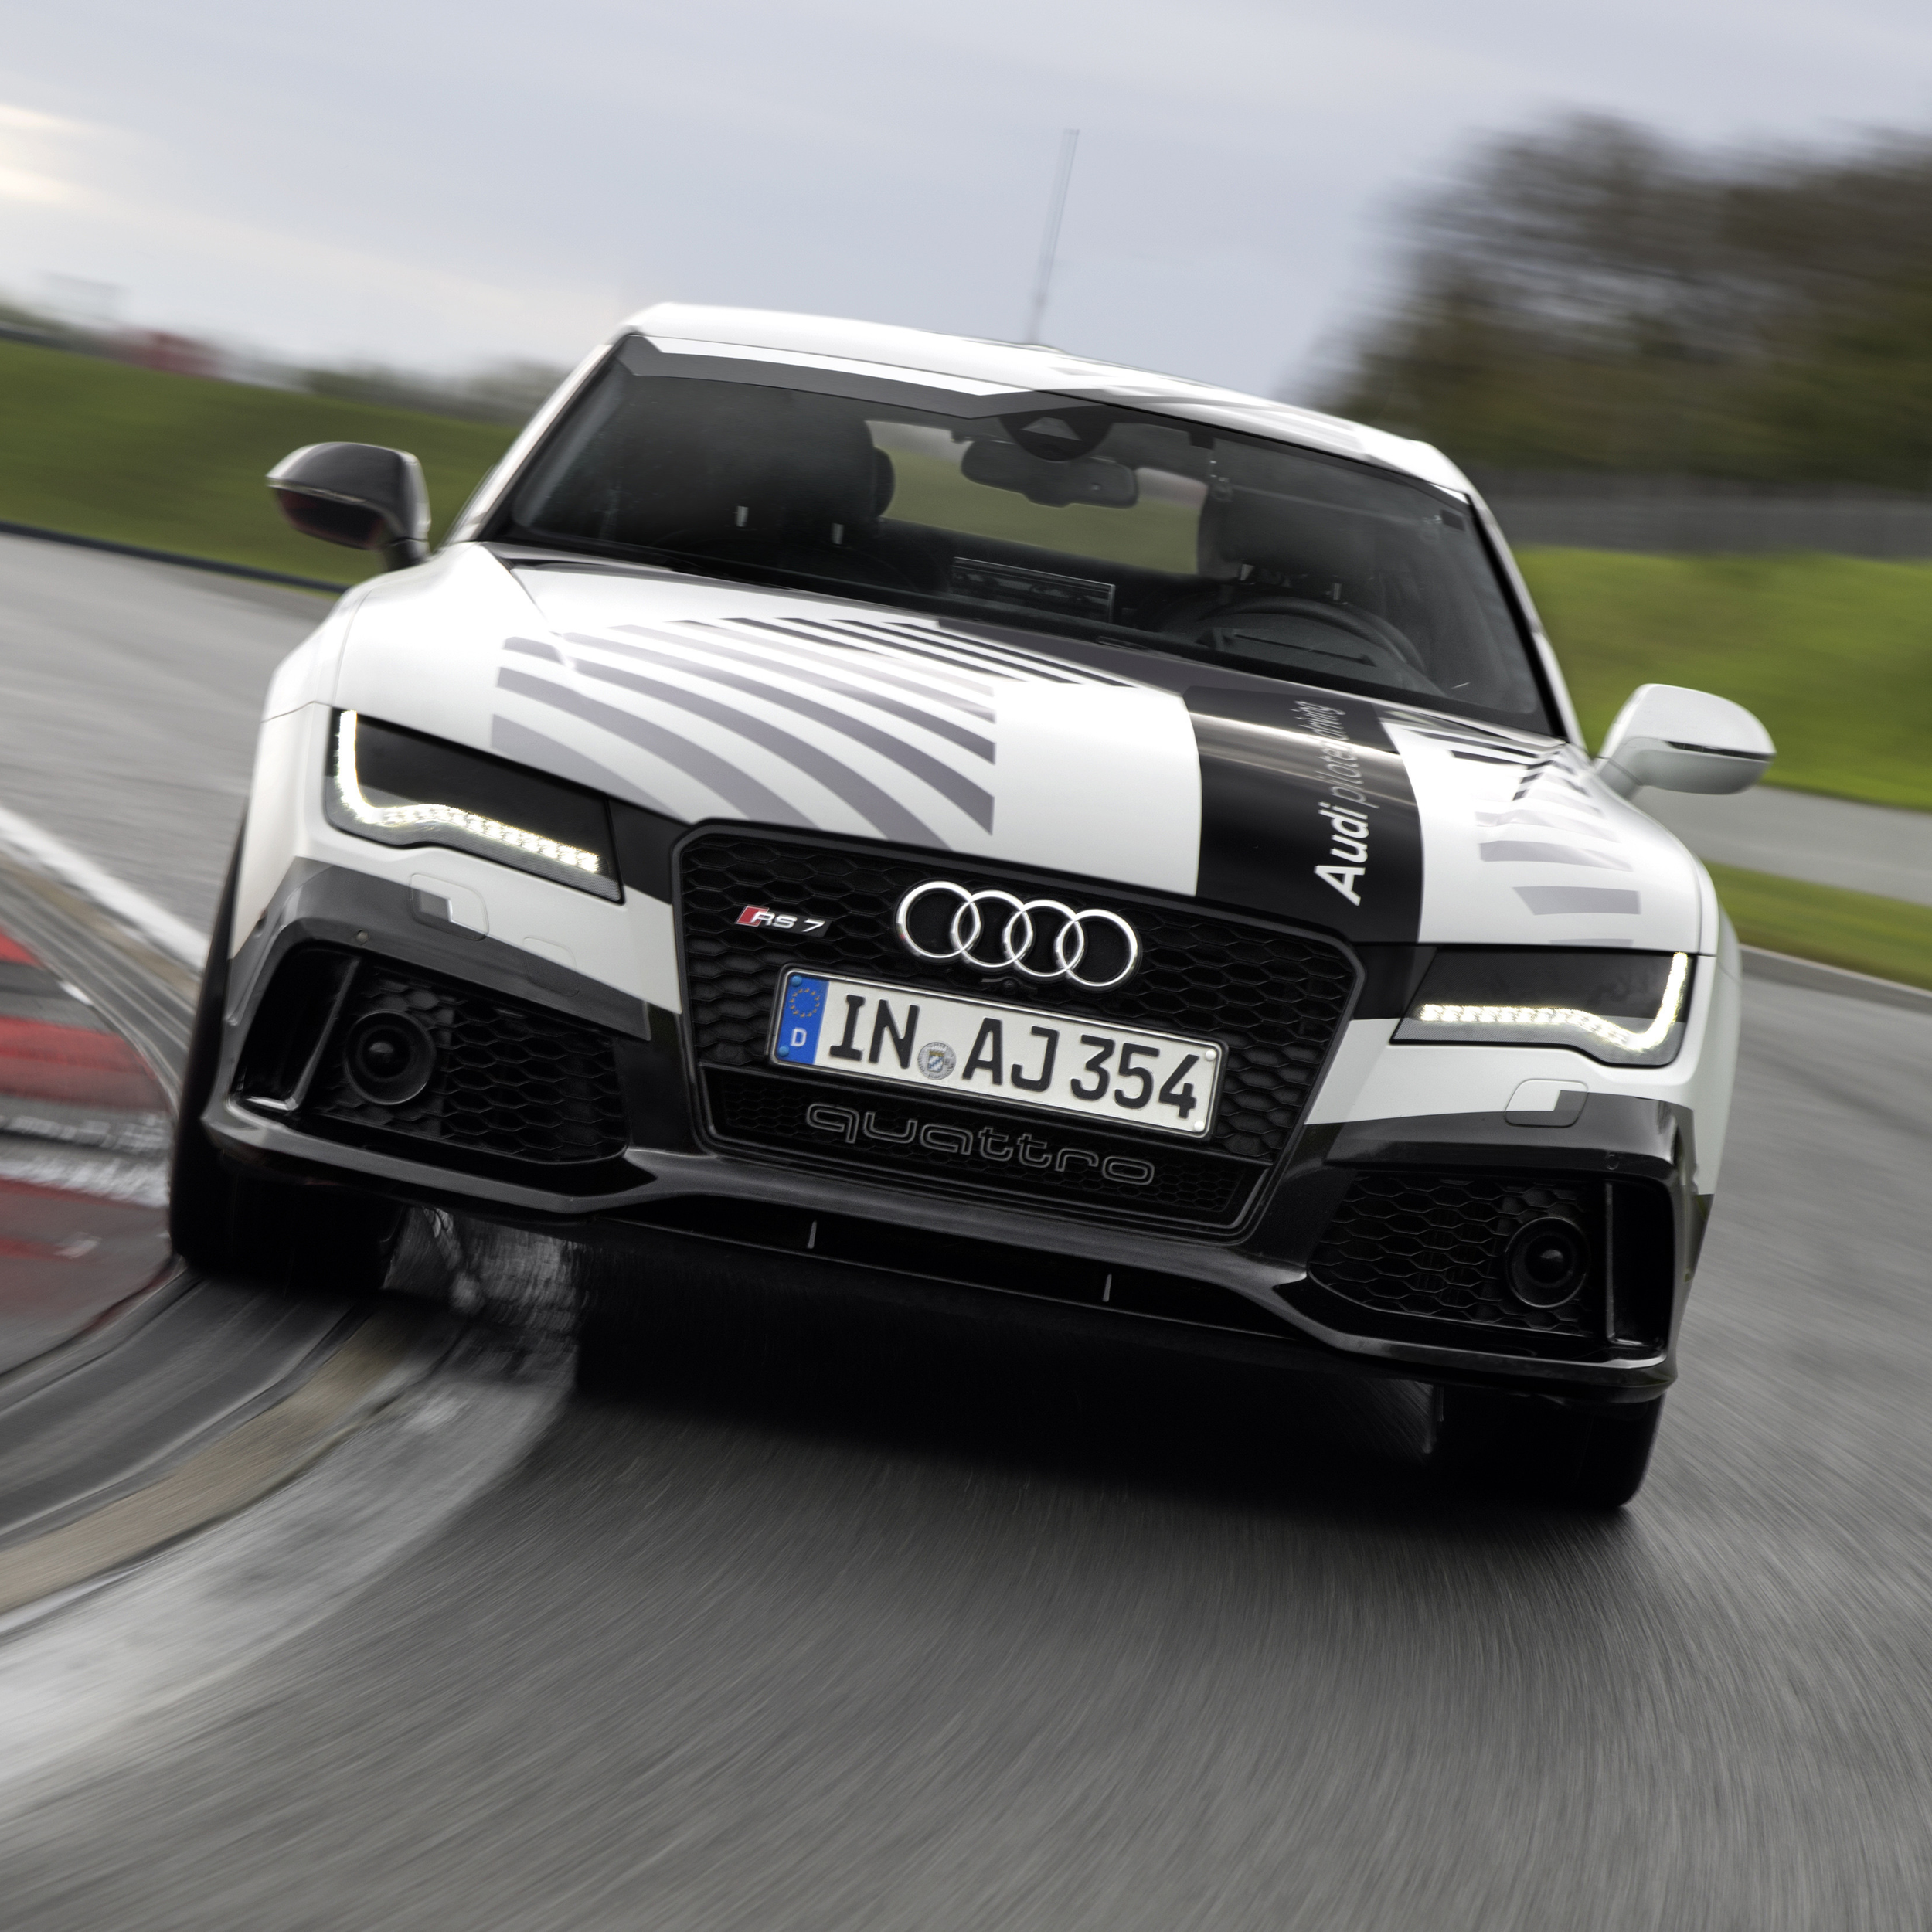 news-2014-audi-rs-7-piloted-car-02.jpeg